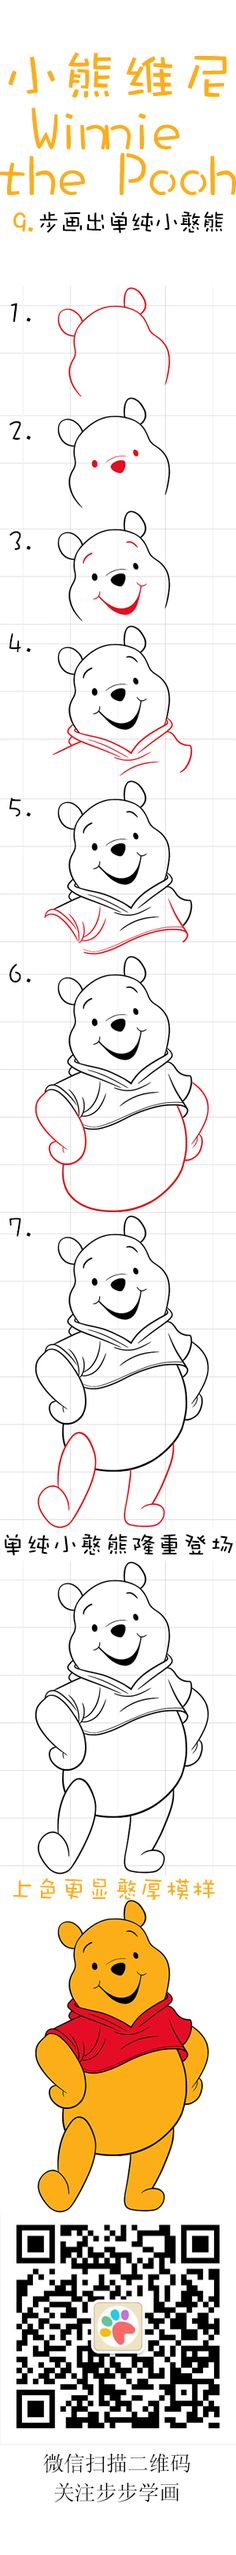 Disney Art Diy Drawing Winnie The Pooh 24 Ideas For 2019 Drawing Lessons, Drawing Techniques, Art Lessons, Doodle Drawings, Easy Drawings, Doodle Art, Disney Kunst, Disney Art, Disney Drawings